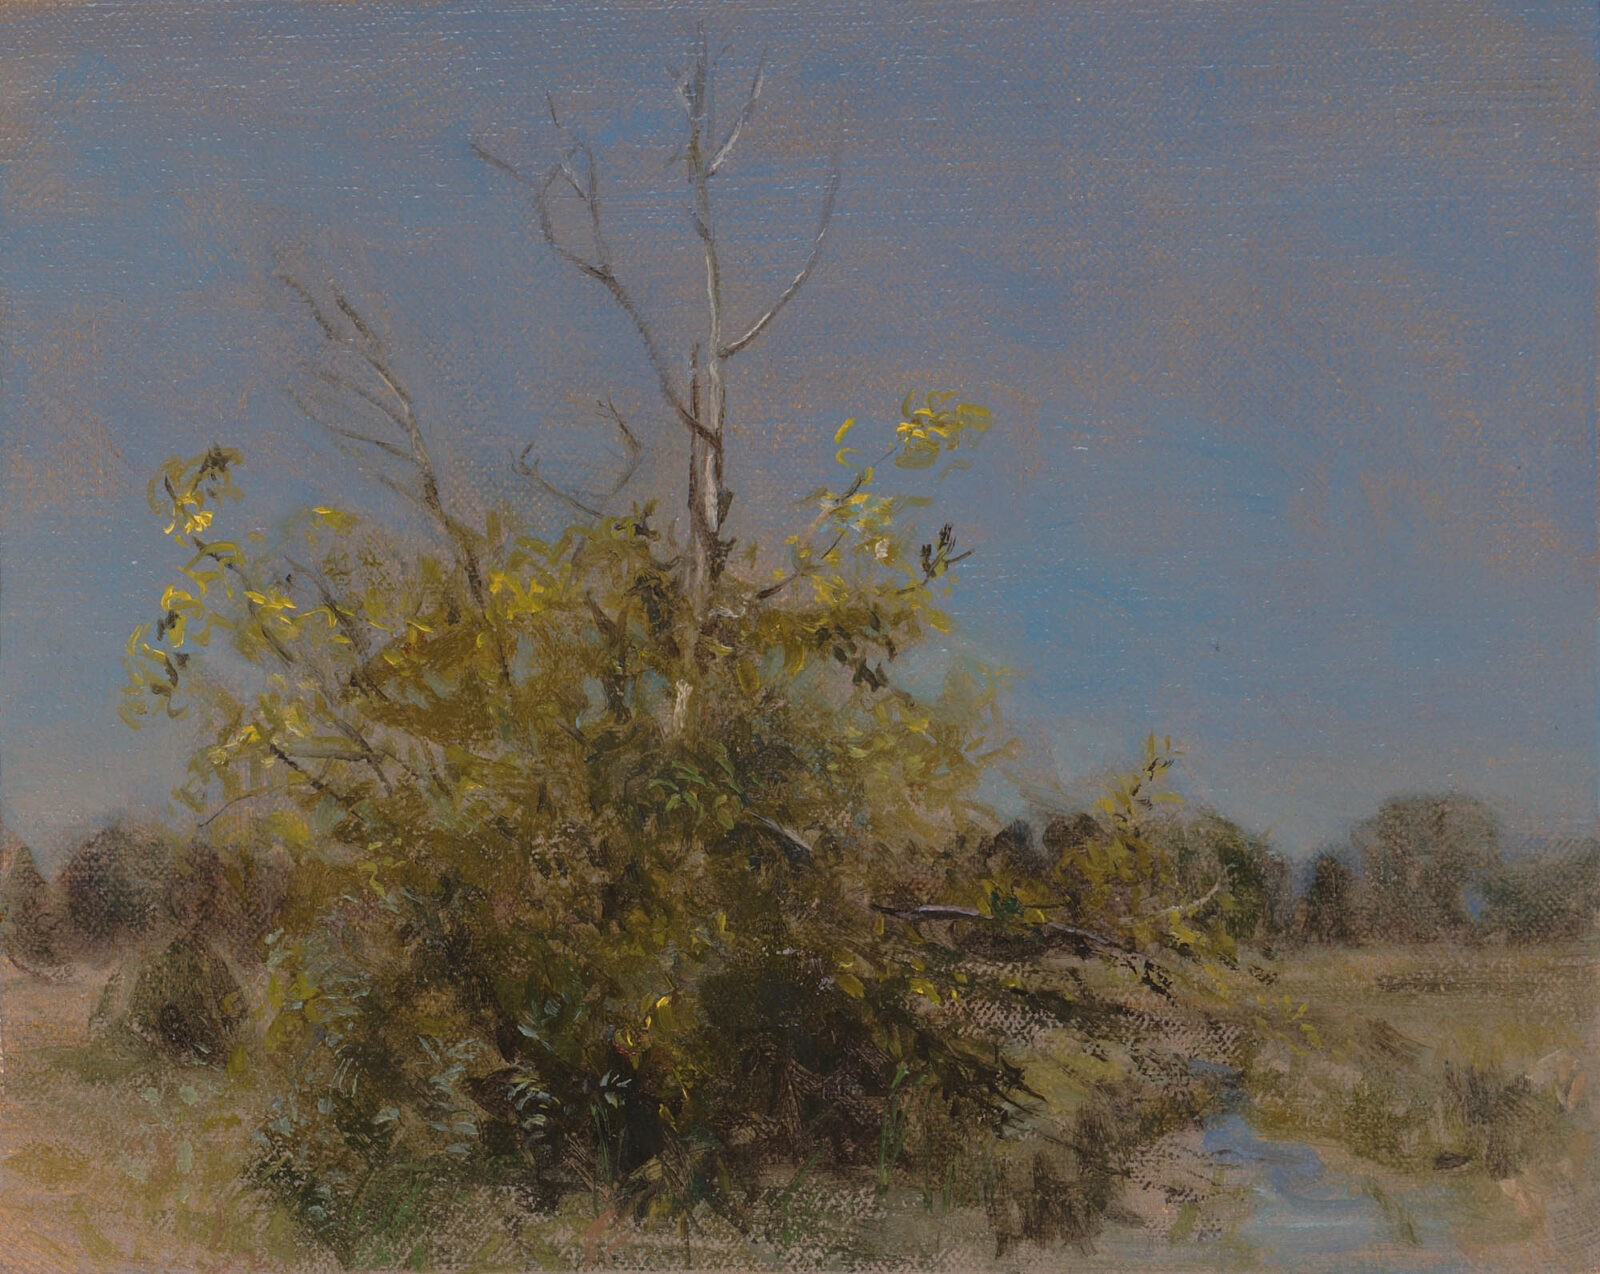 Liza Visagie - Yellow Bush. Oil on Linen 7 x 9 inches